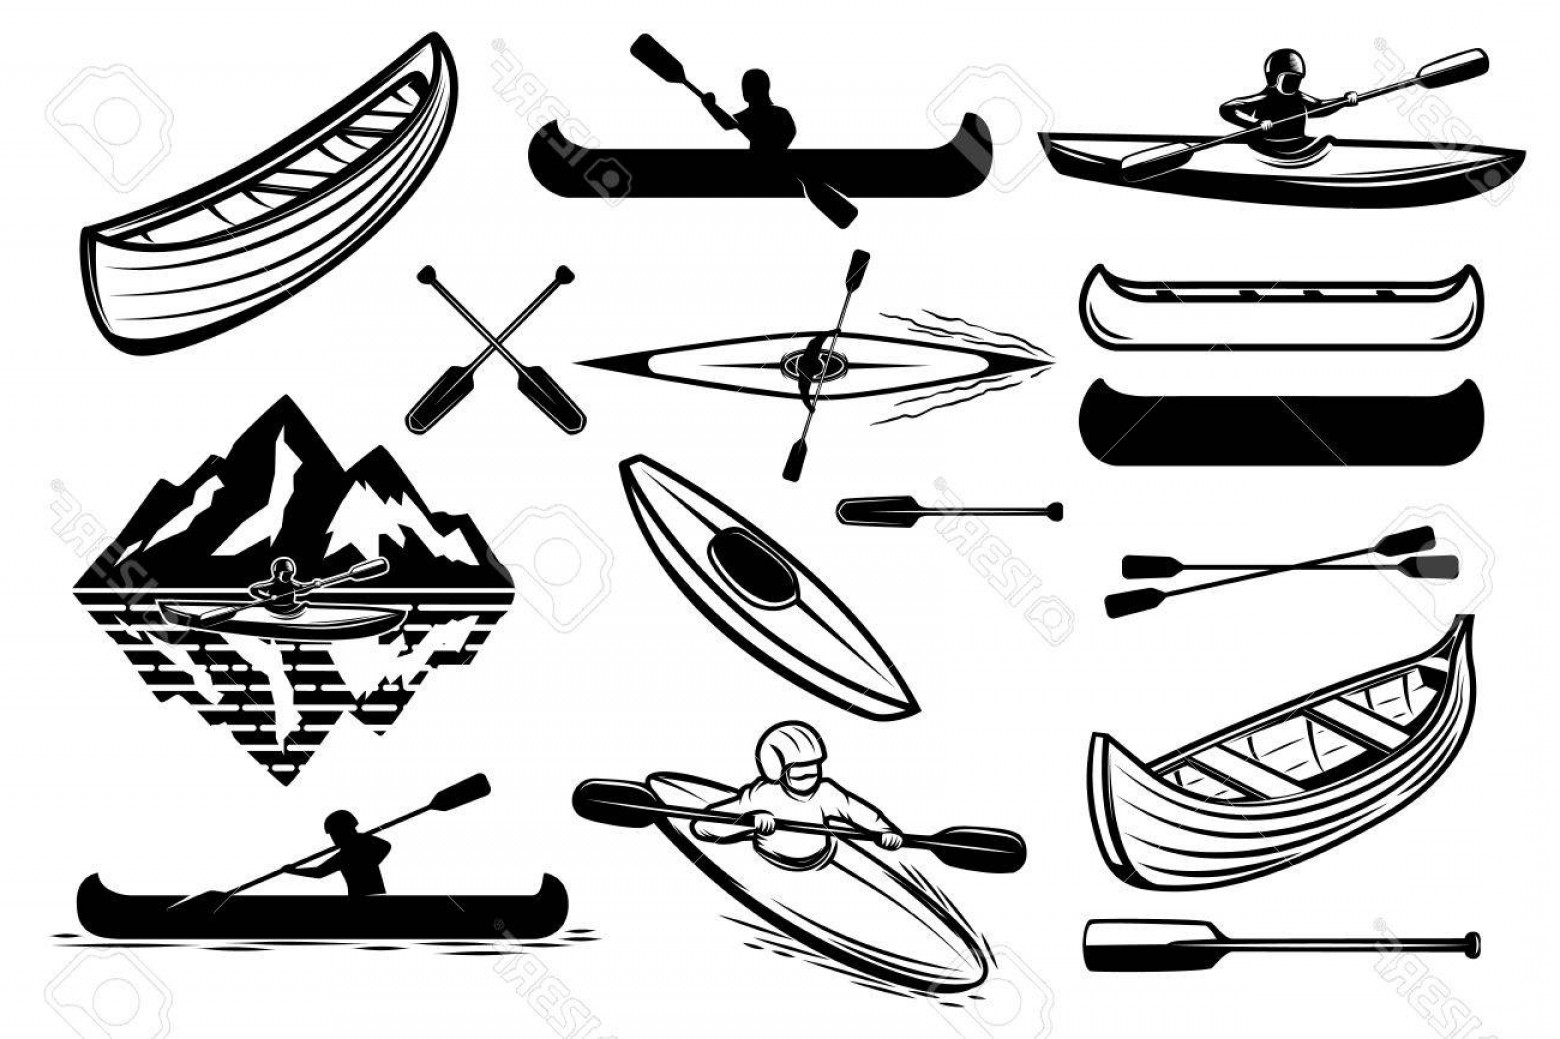 Canoe Vector: Photostock Vector Set Of The Kayaking Sport Icons Canoe Boats Oarsmans Design Elements For Logo Label Emblem Sign Vect